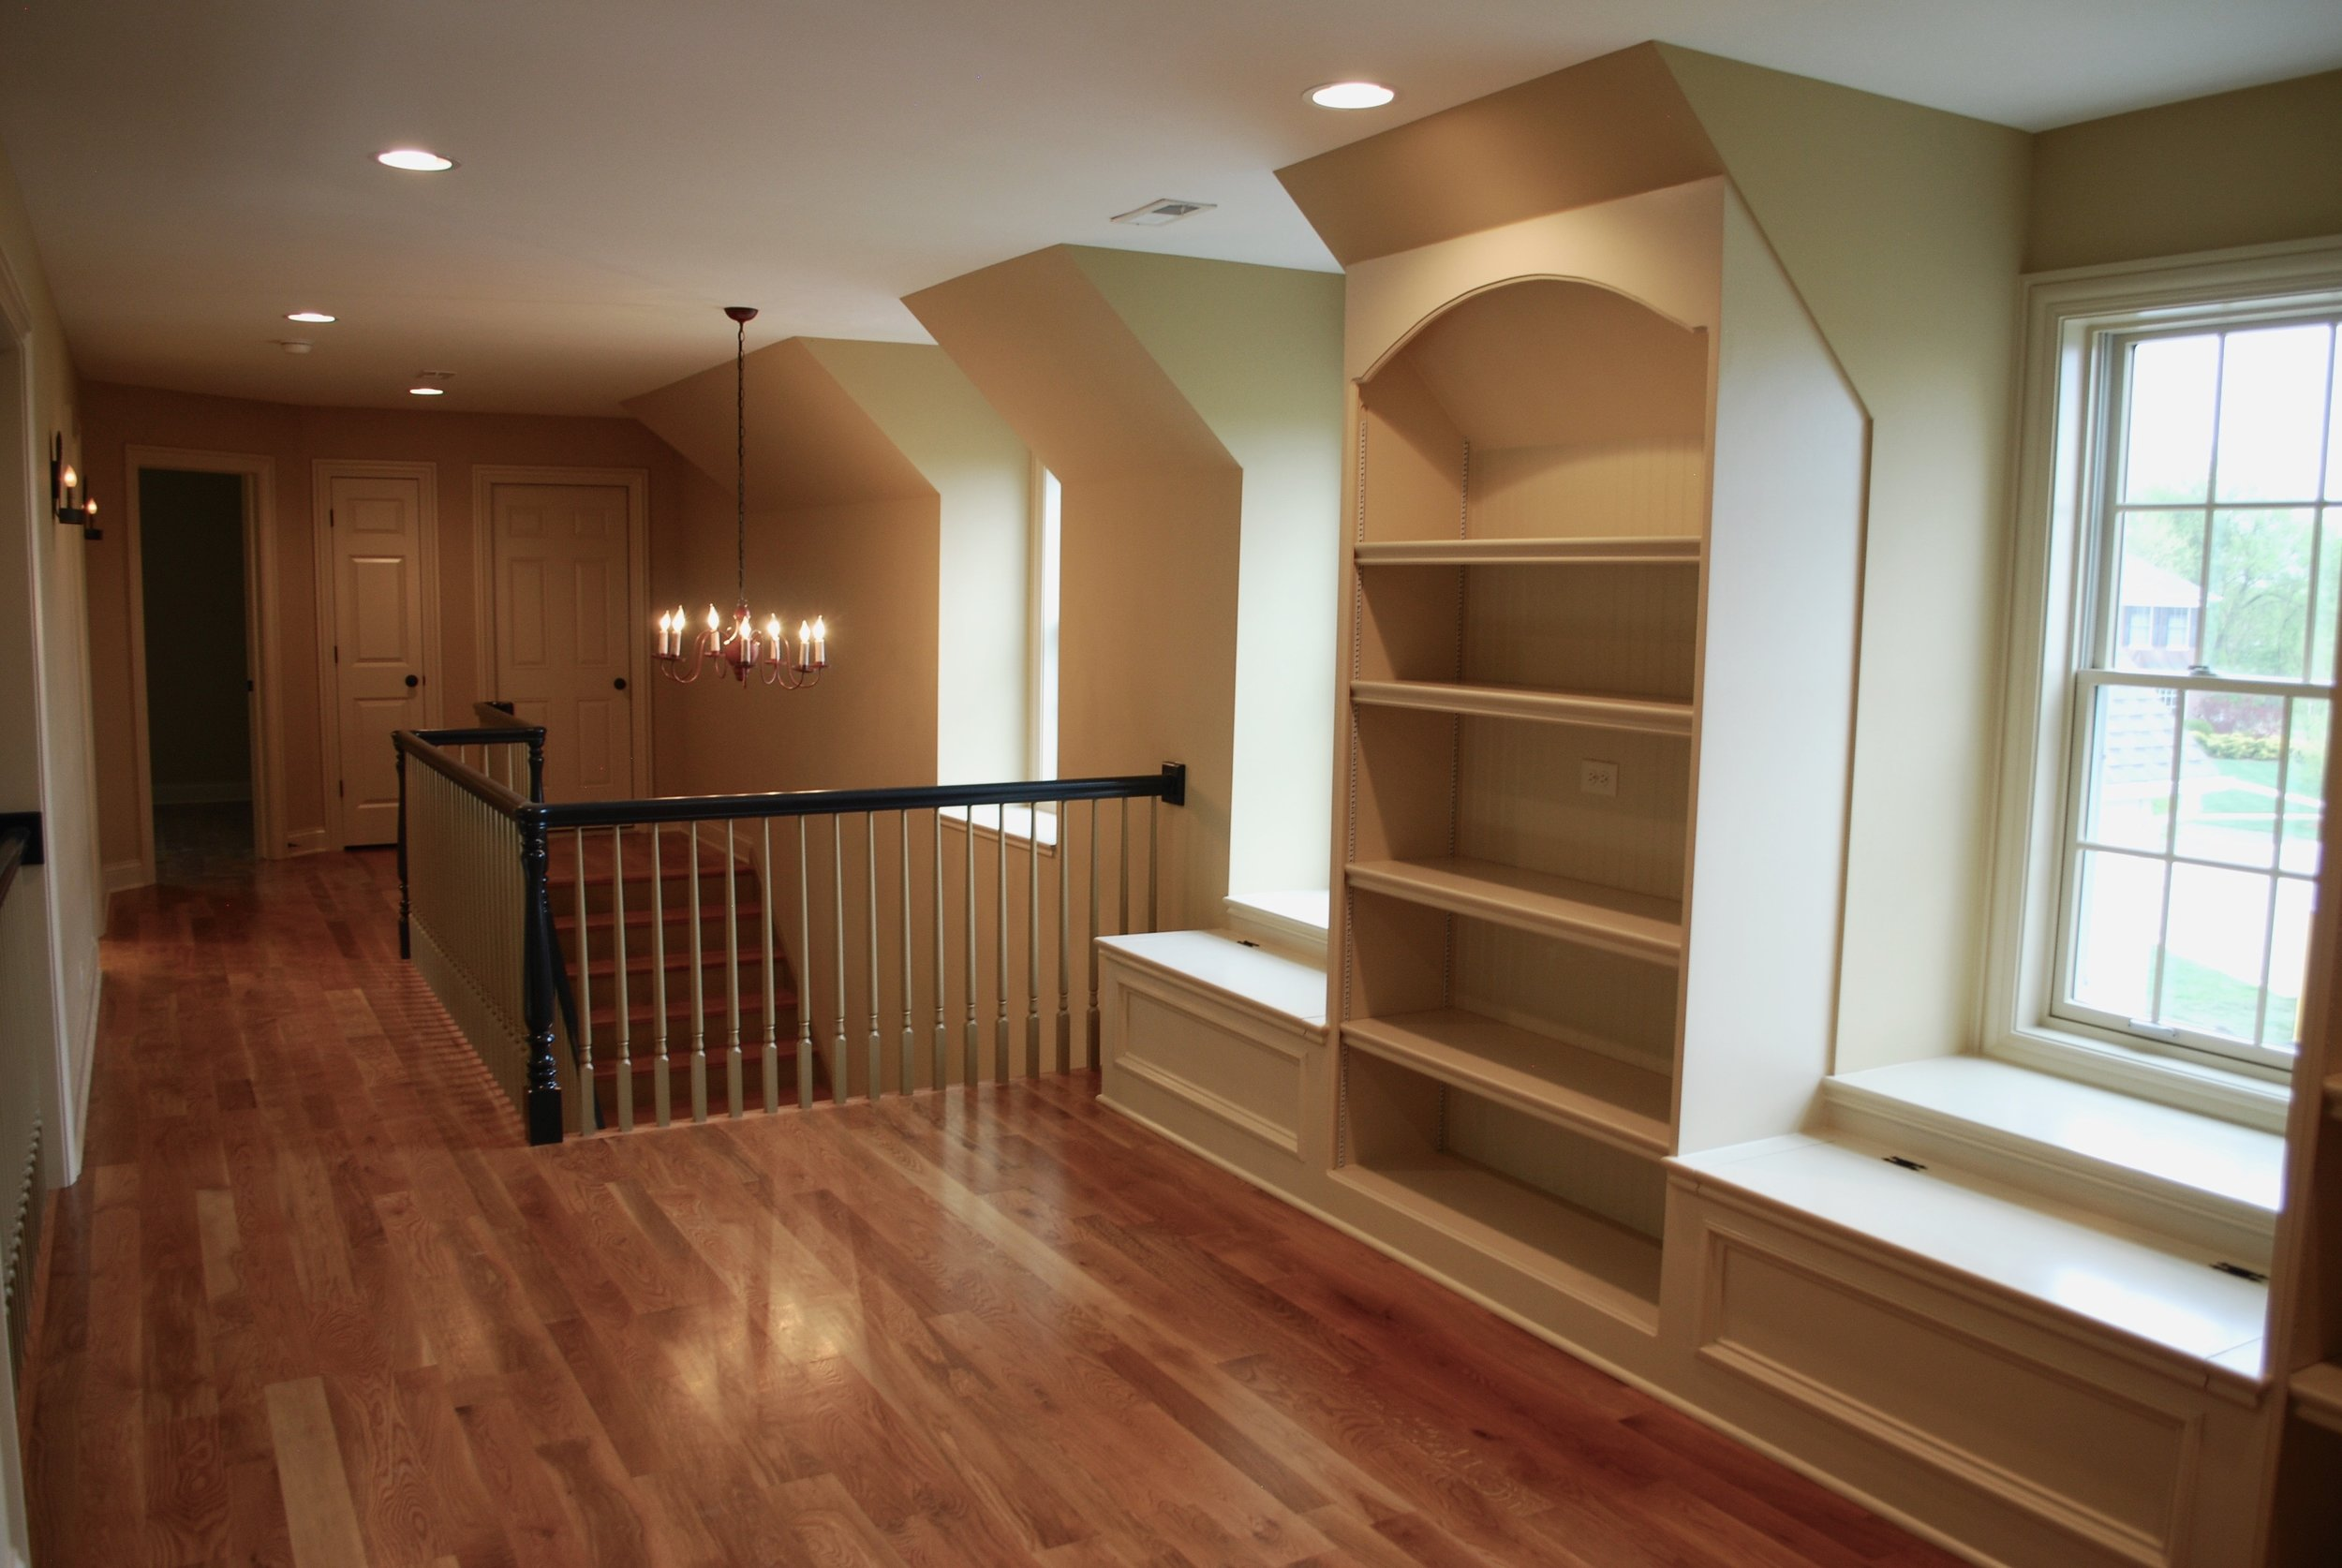 Built in Book Cases in this Custom Home Loft